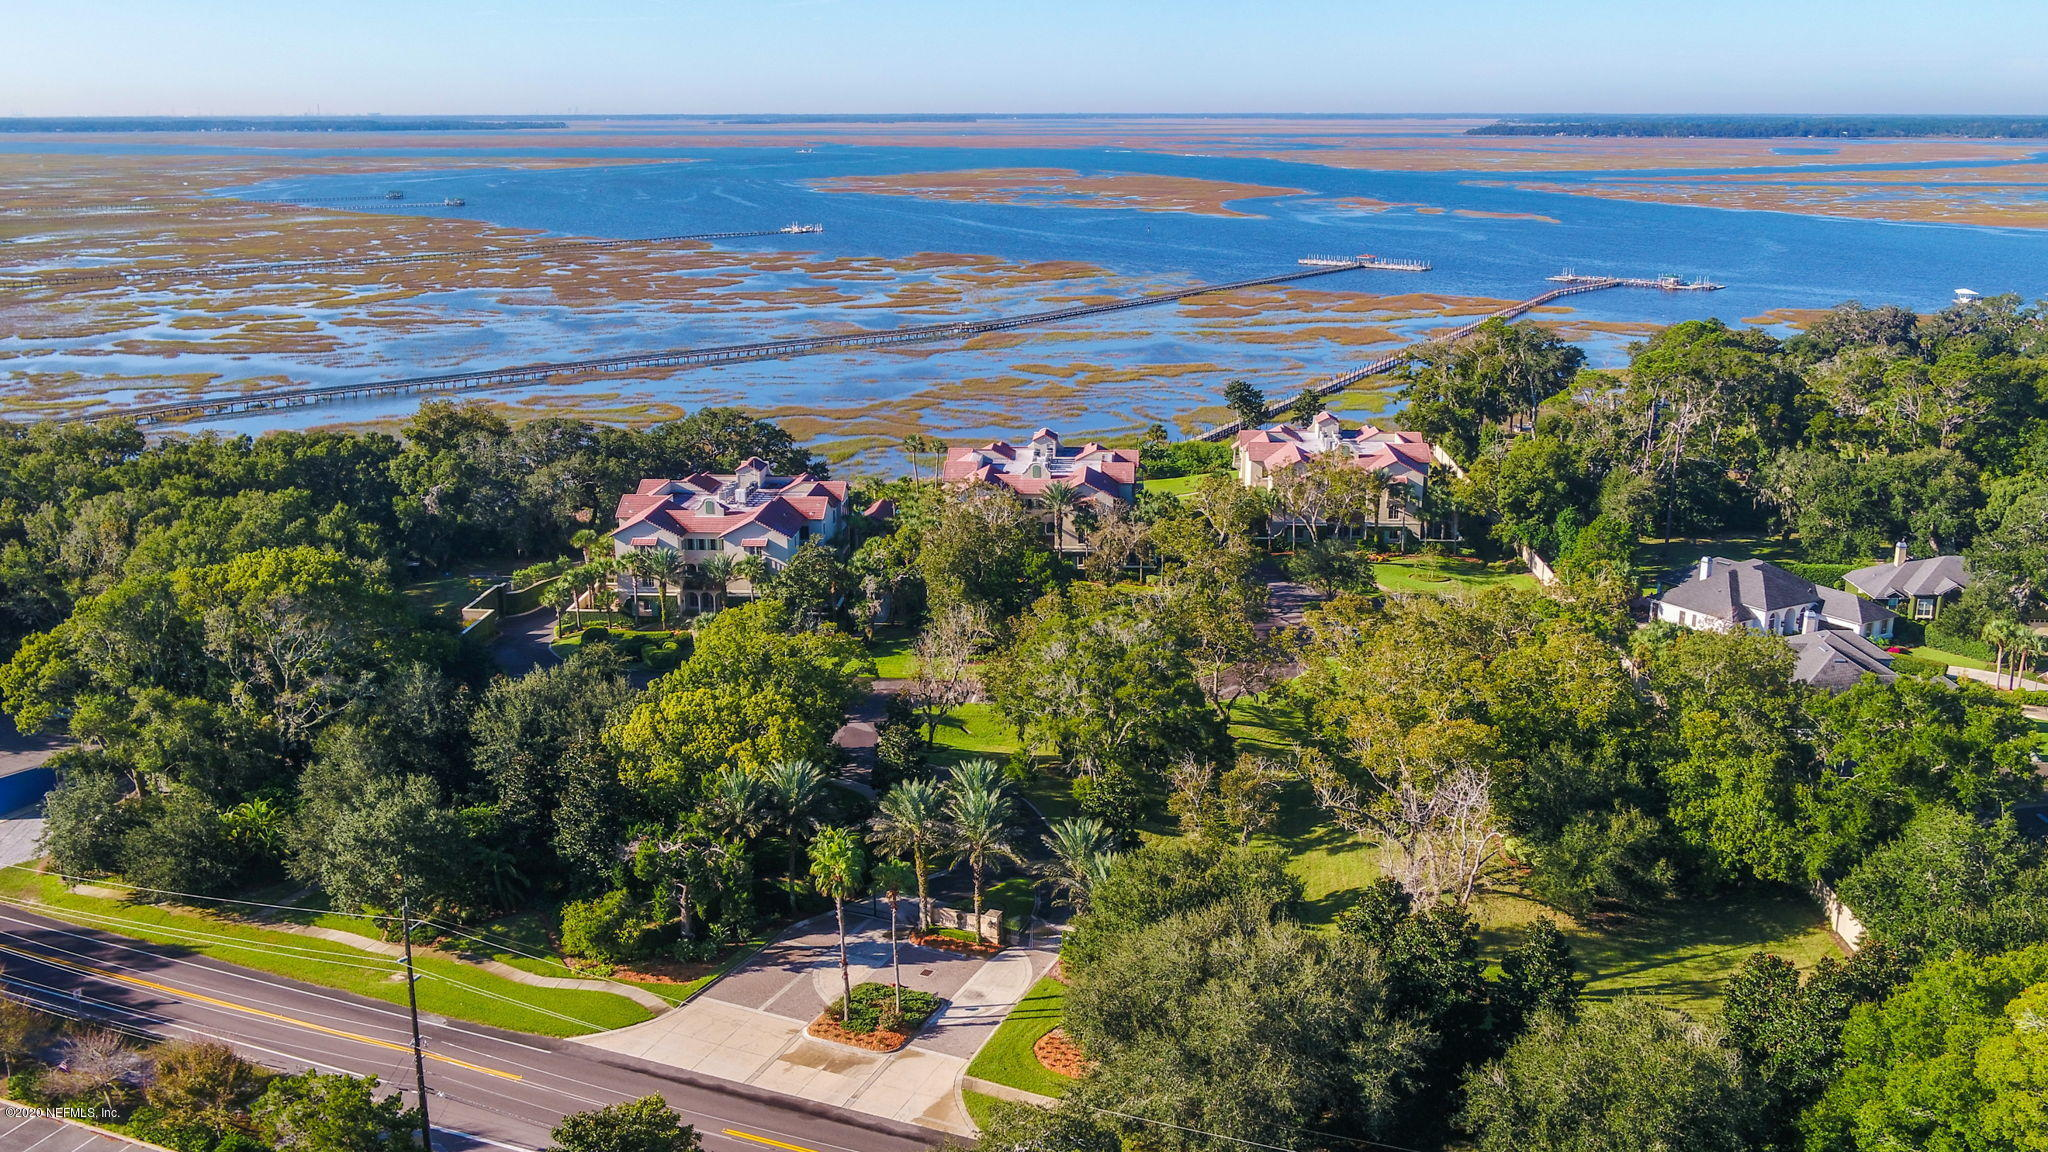 5063 FIRST COAST, FERNANDINA BEACH, FLORIDA 32034, 3 Bedrooms Bedrooms, ,3 BathroomsBathrooms,Residential,For sale,FIRST COAST,1083085